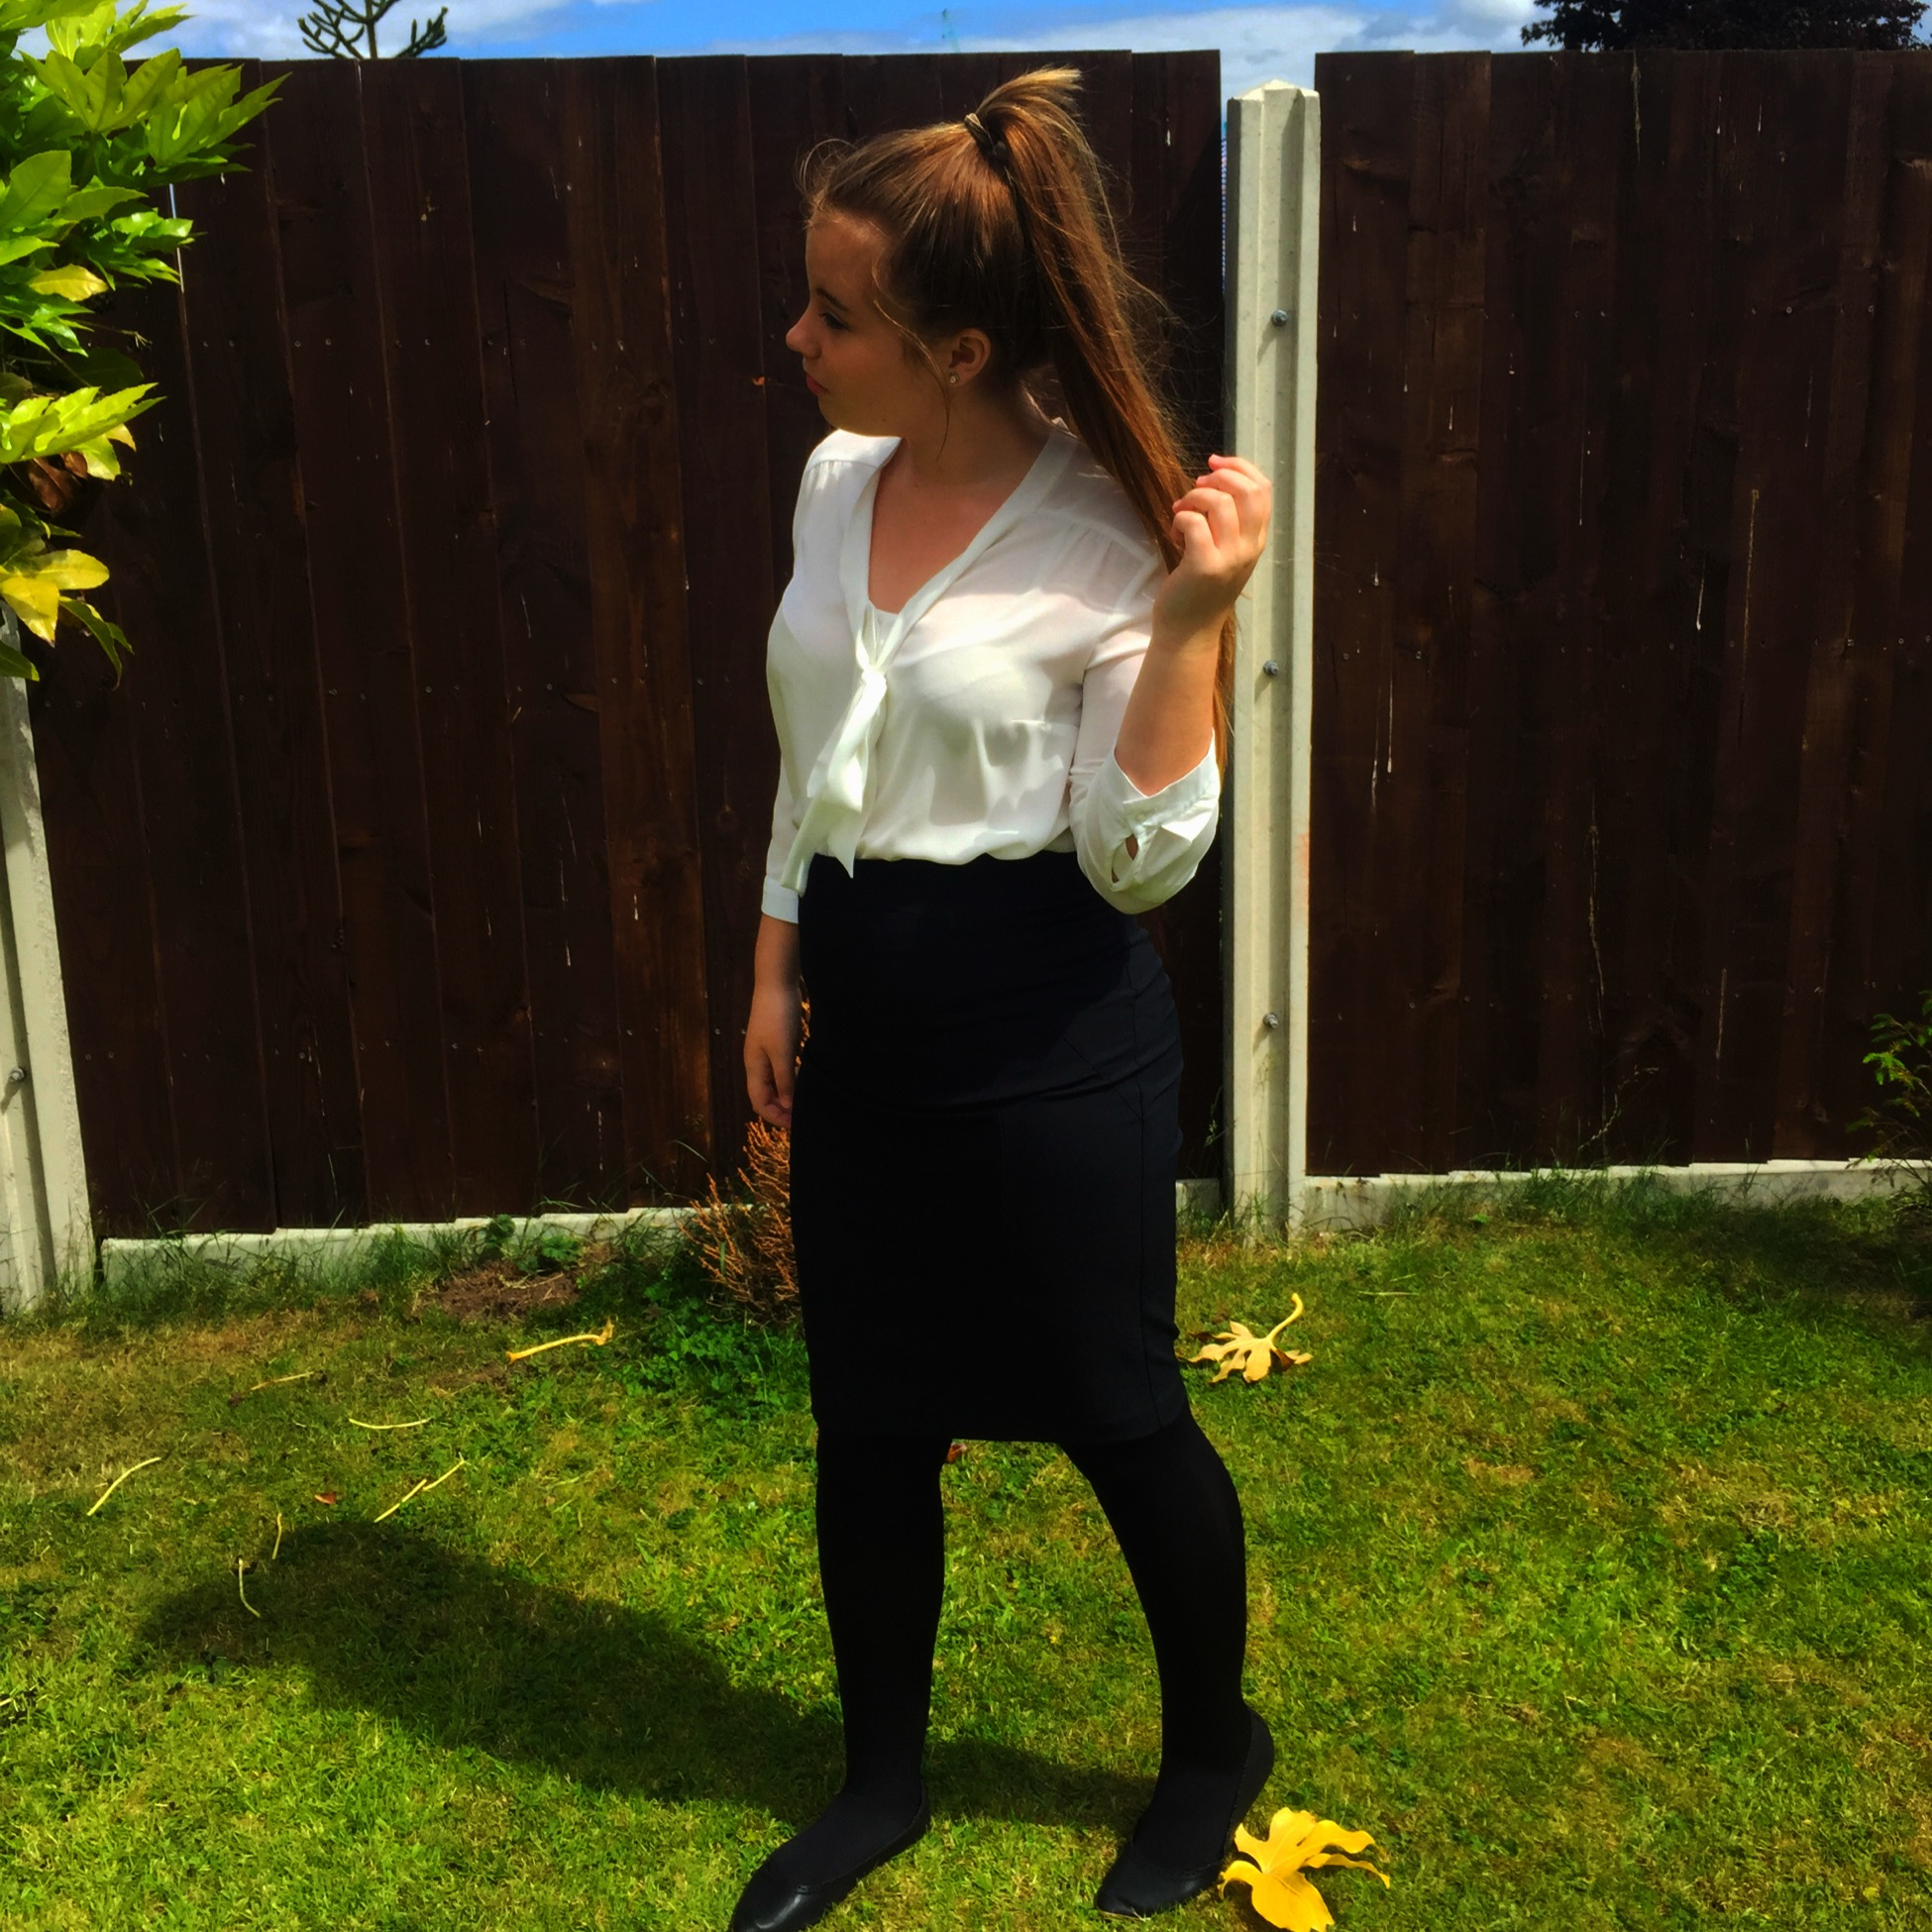 Work Experience: Outfit Of The Day #2: Work Experience